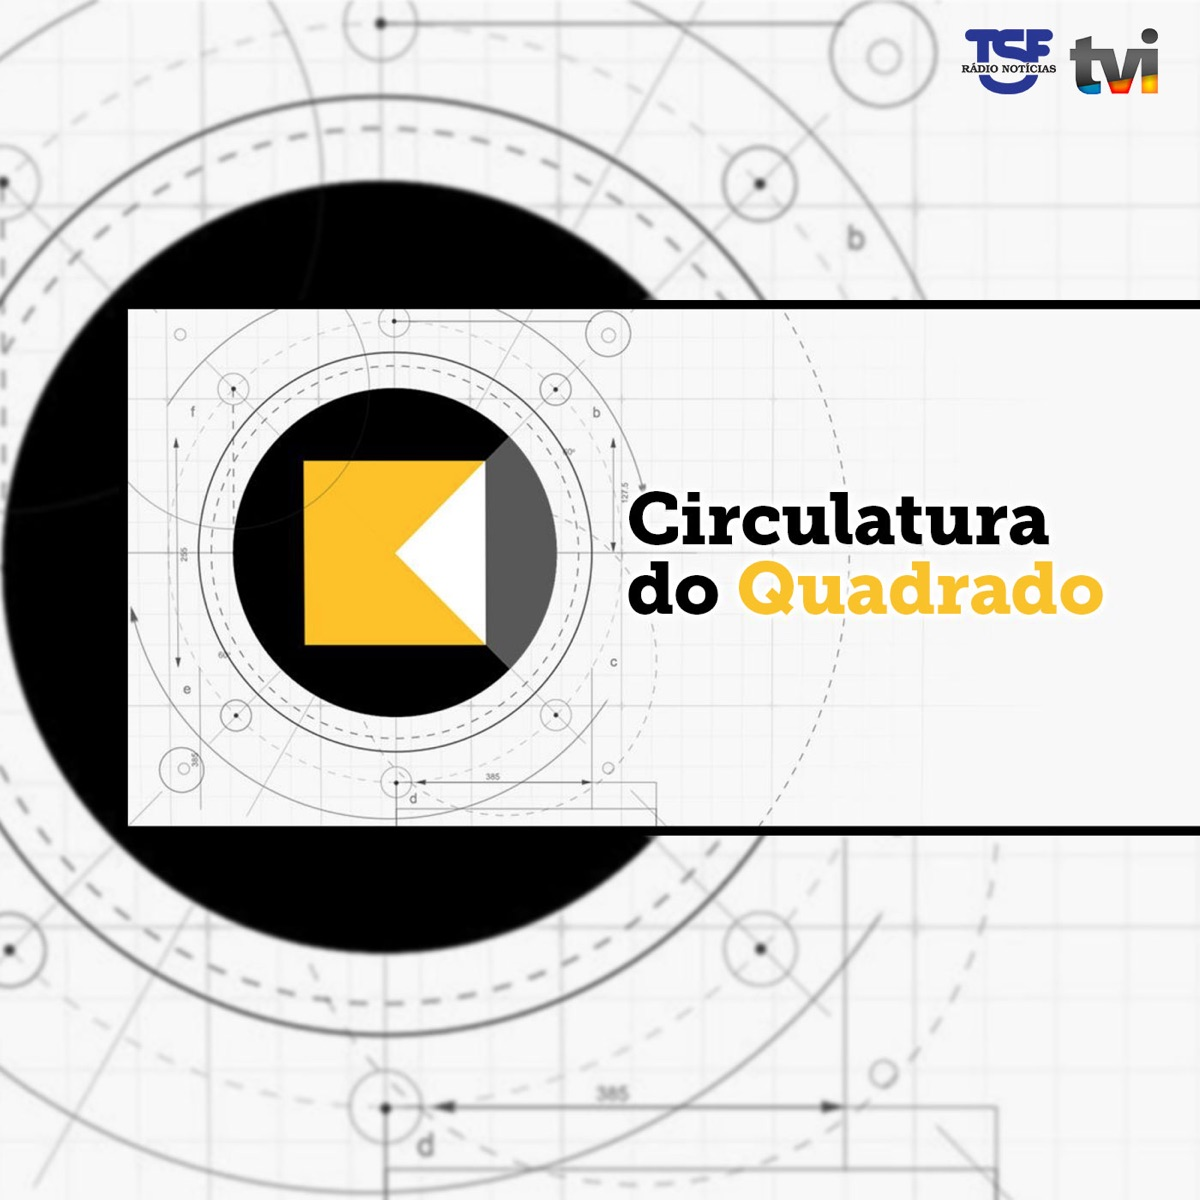 Circulatura do Quadrado - 15 de Abril 2020